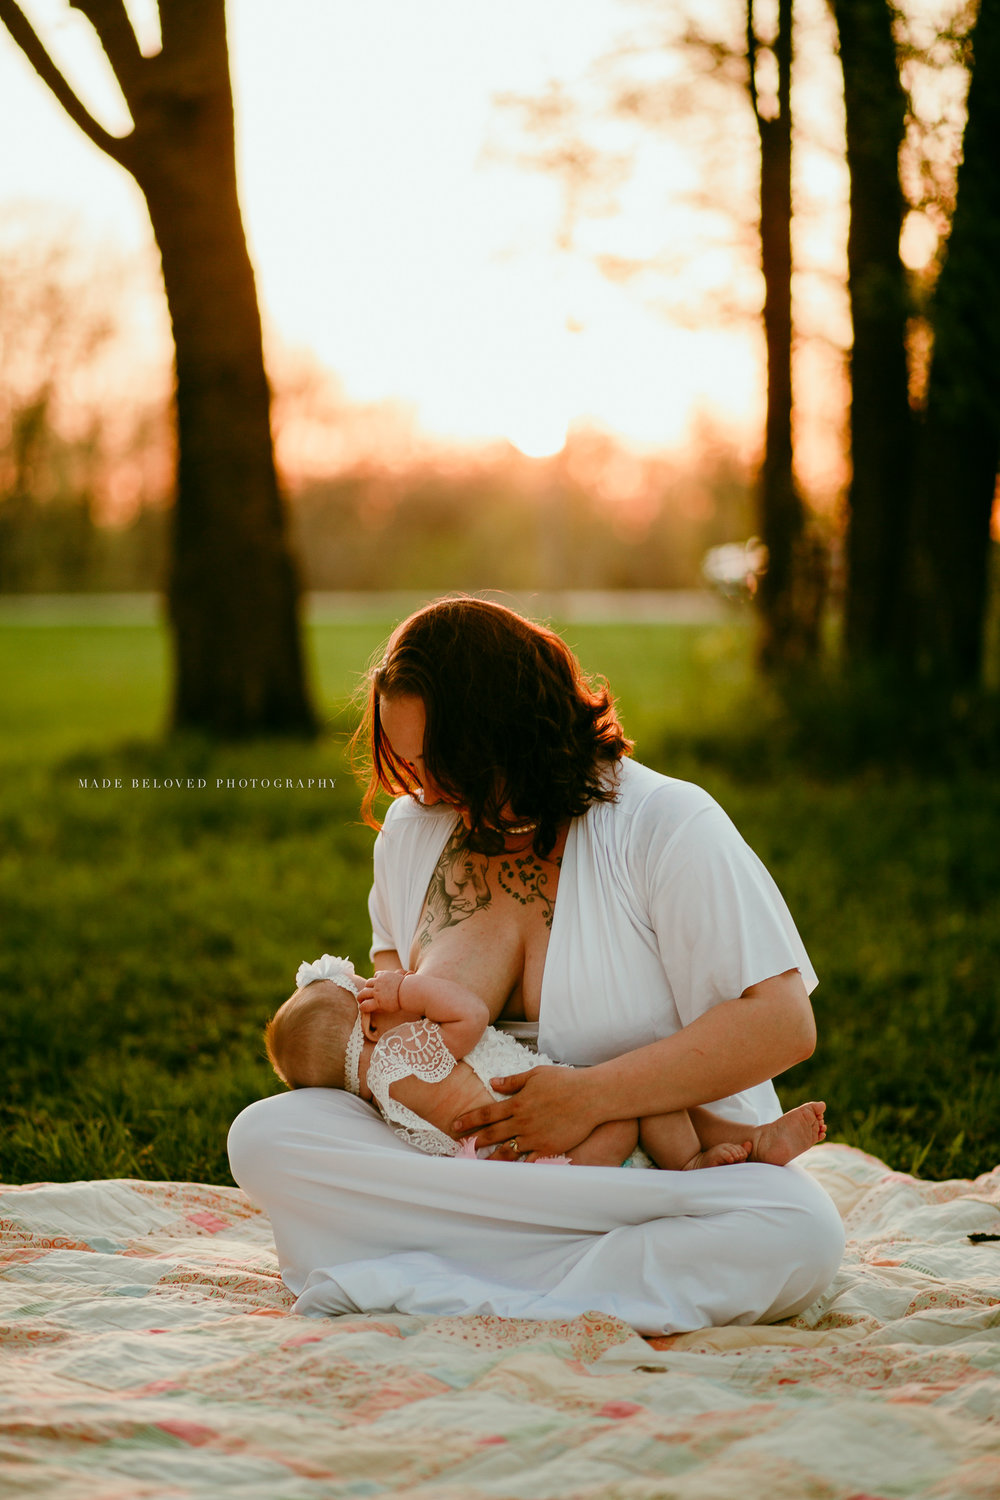 CEDAR VALLEY BREASTFEEDING AWARENESS PROJECT MADE BELOVED PHOTOGRAPHY IOWA-36.jpg